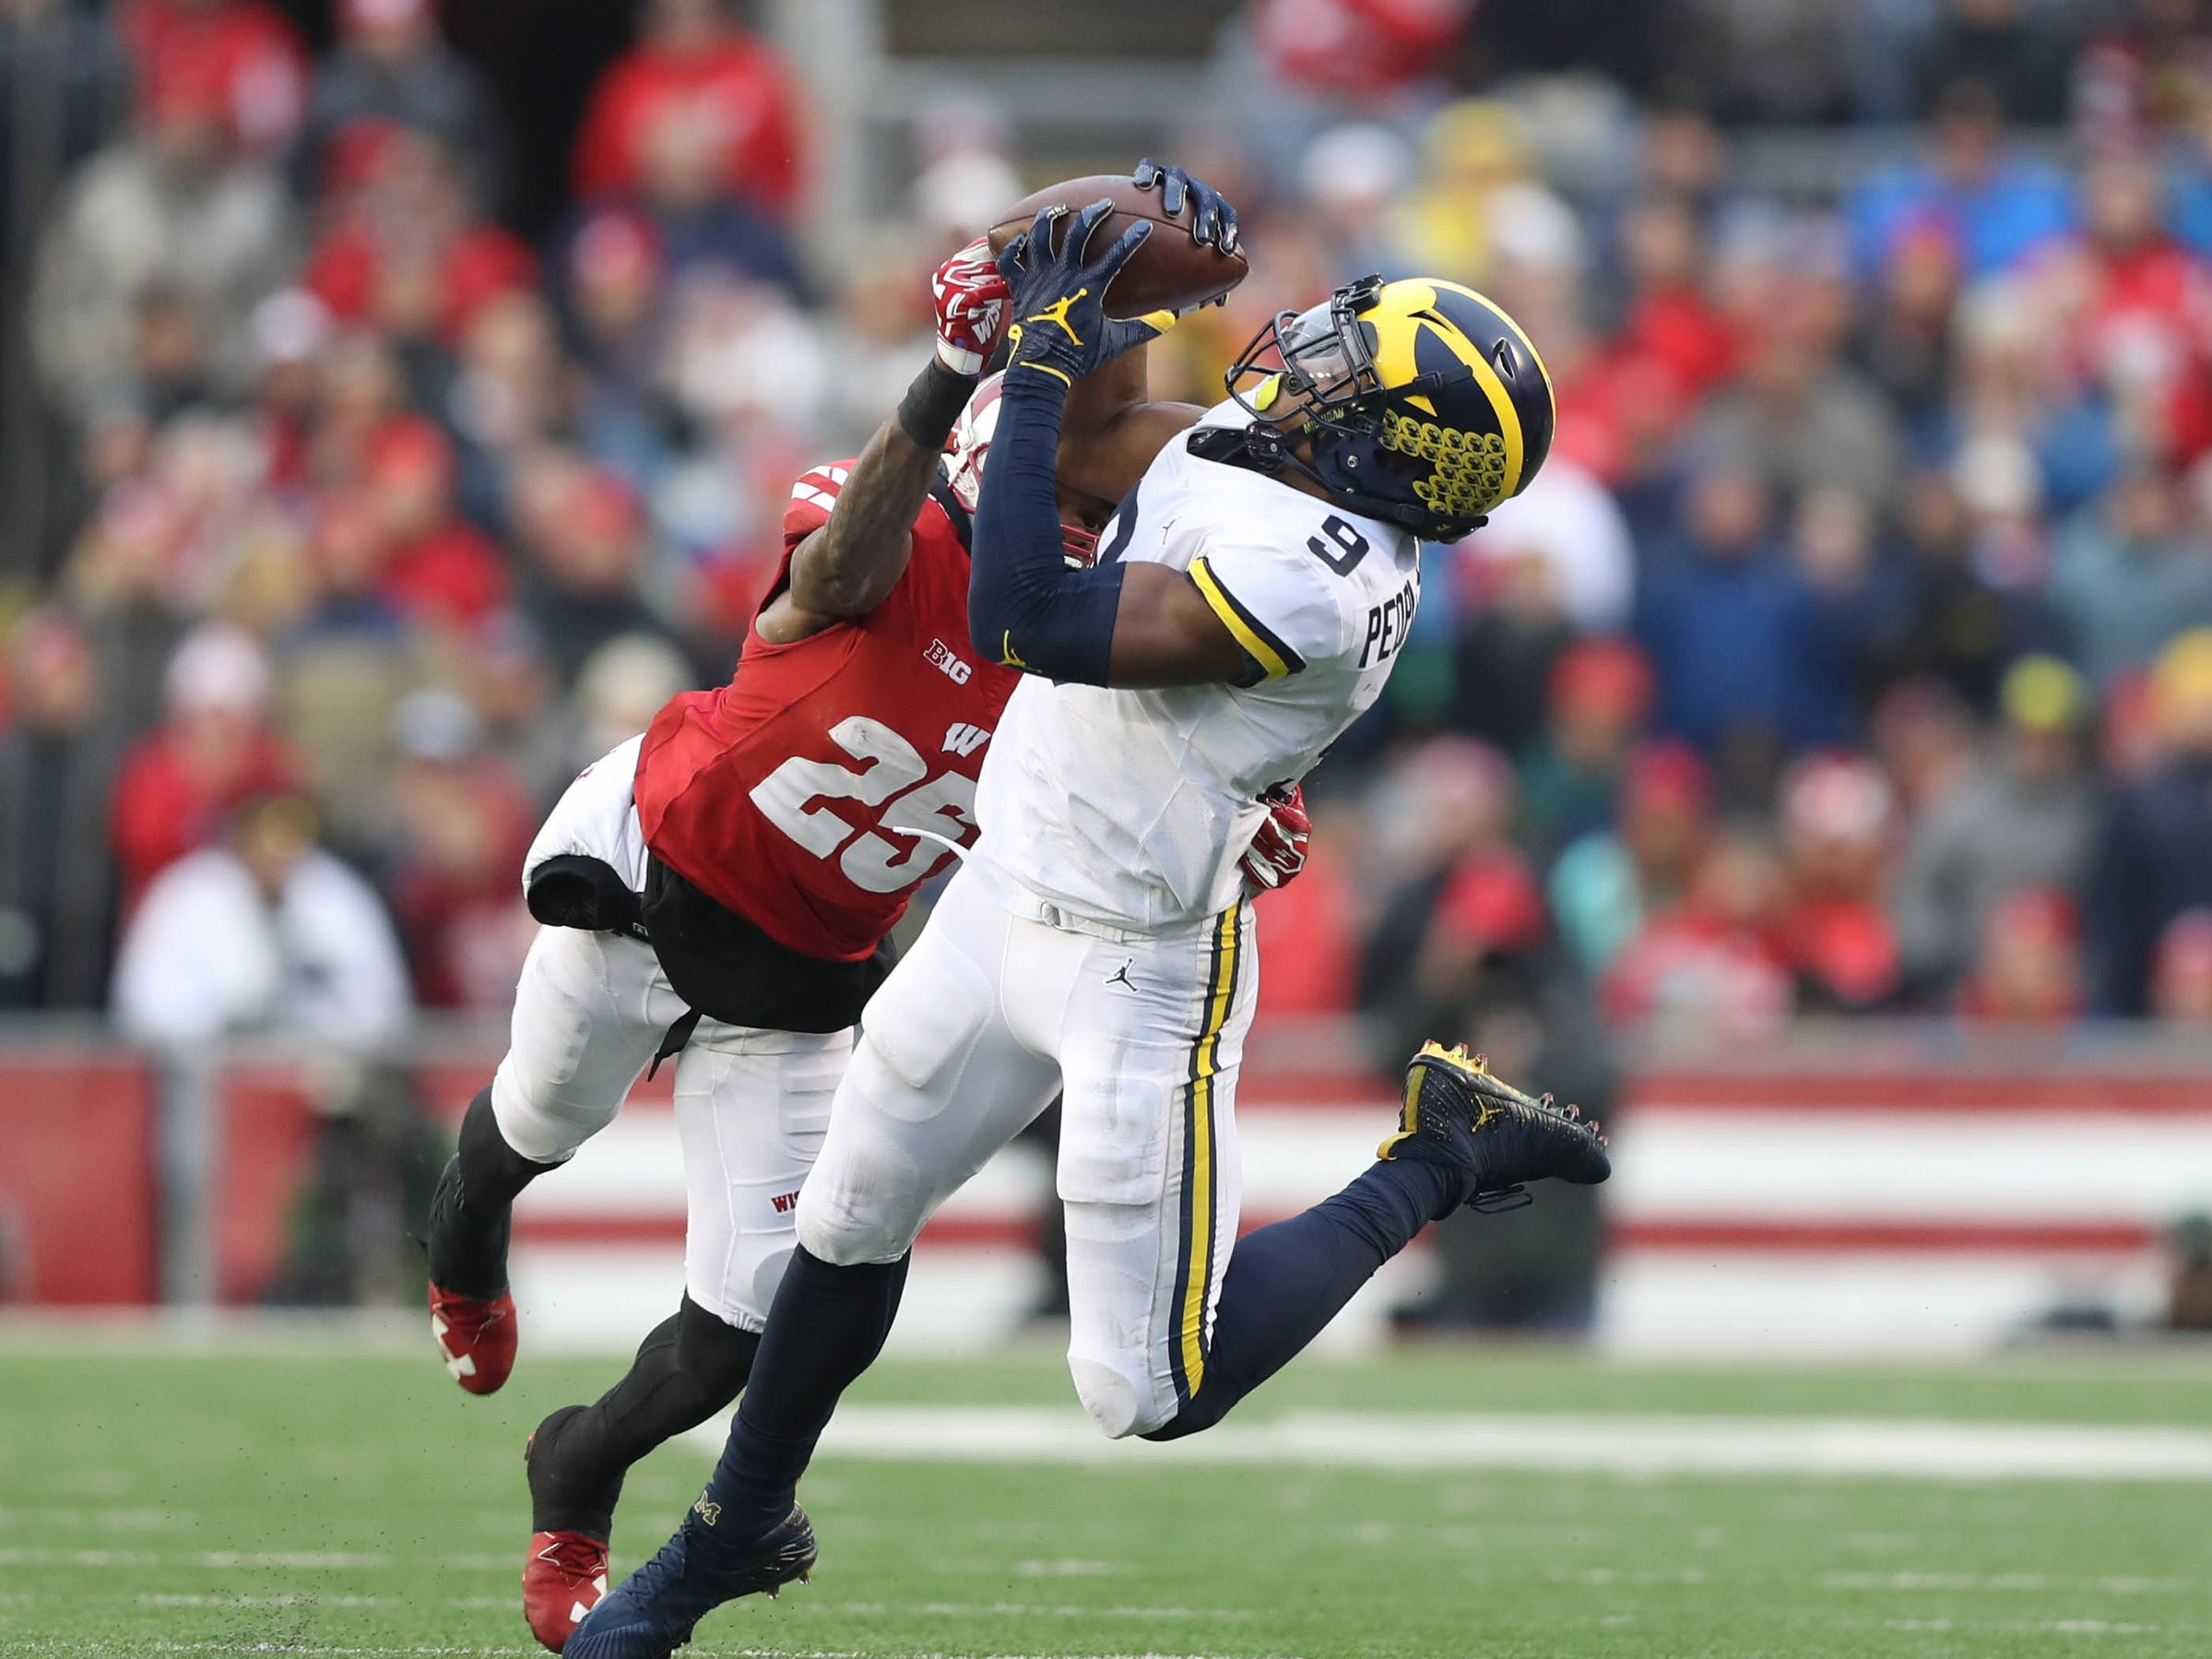 10. Wisconsin at Michigan. When: Oct. 13. Where: Ann Arbor. The buzz: Last year, the Wolverines had the undefeated Badgers on the ropes with a three-point lead in the in third quarter. But Wisconsin came storming back for a 24-10 win.